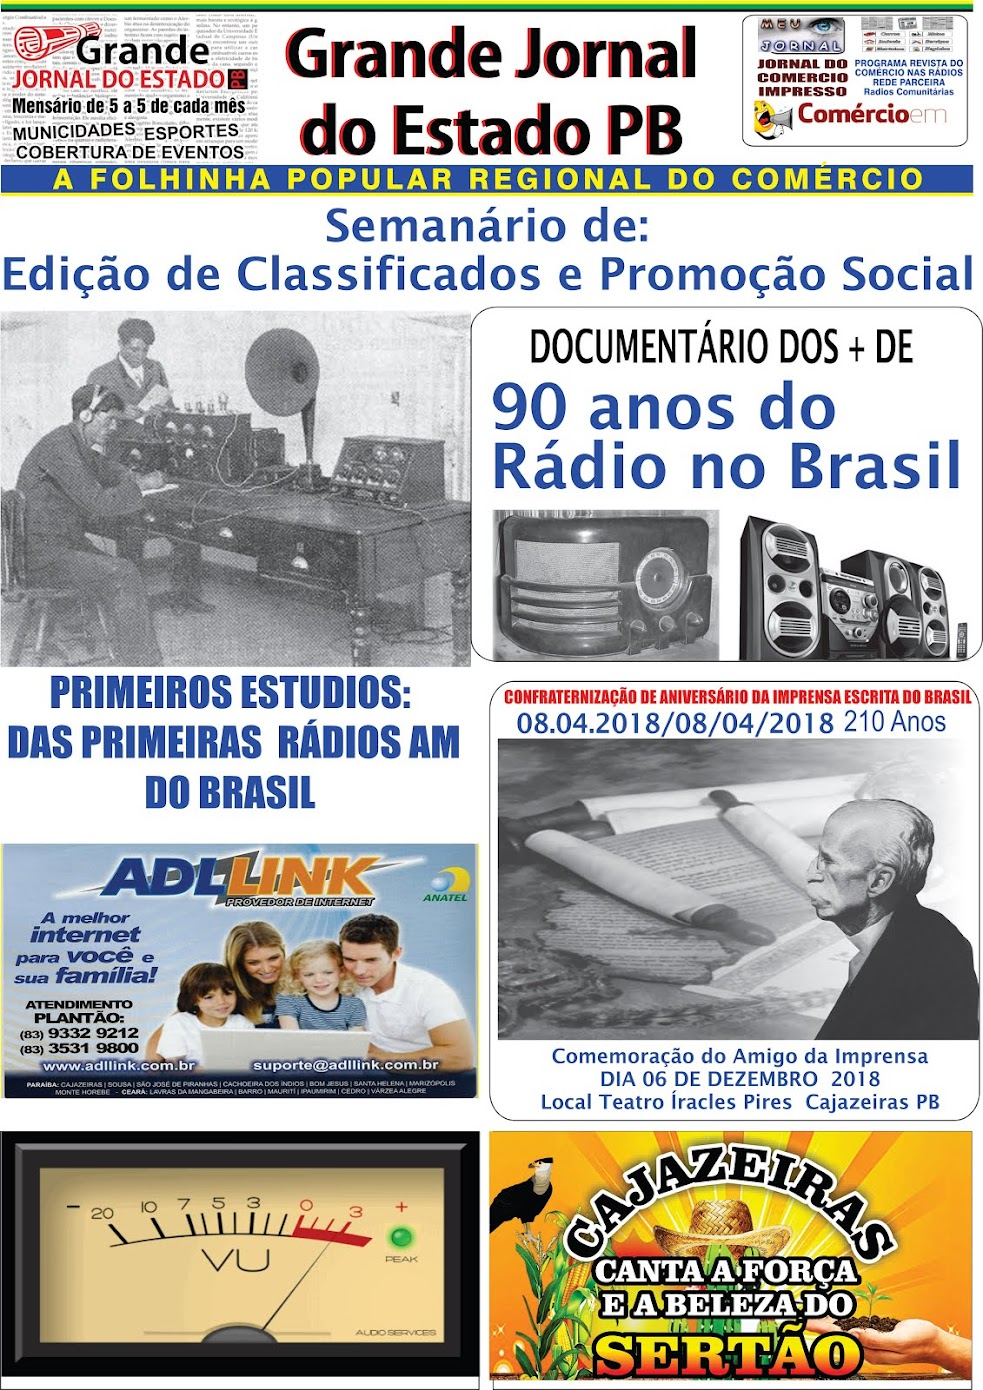 BLOG  GRANDE JORNAL DO ESTADO PB